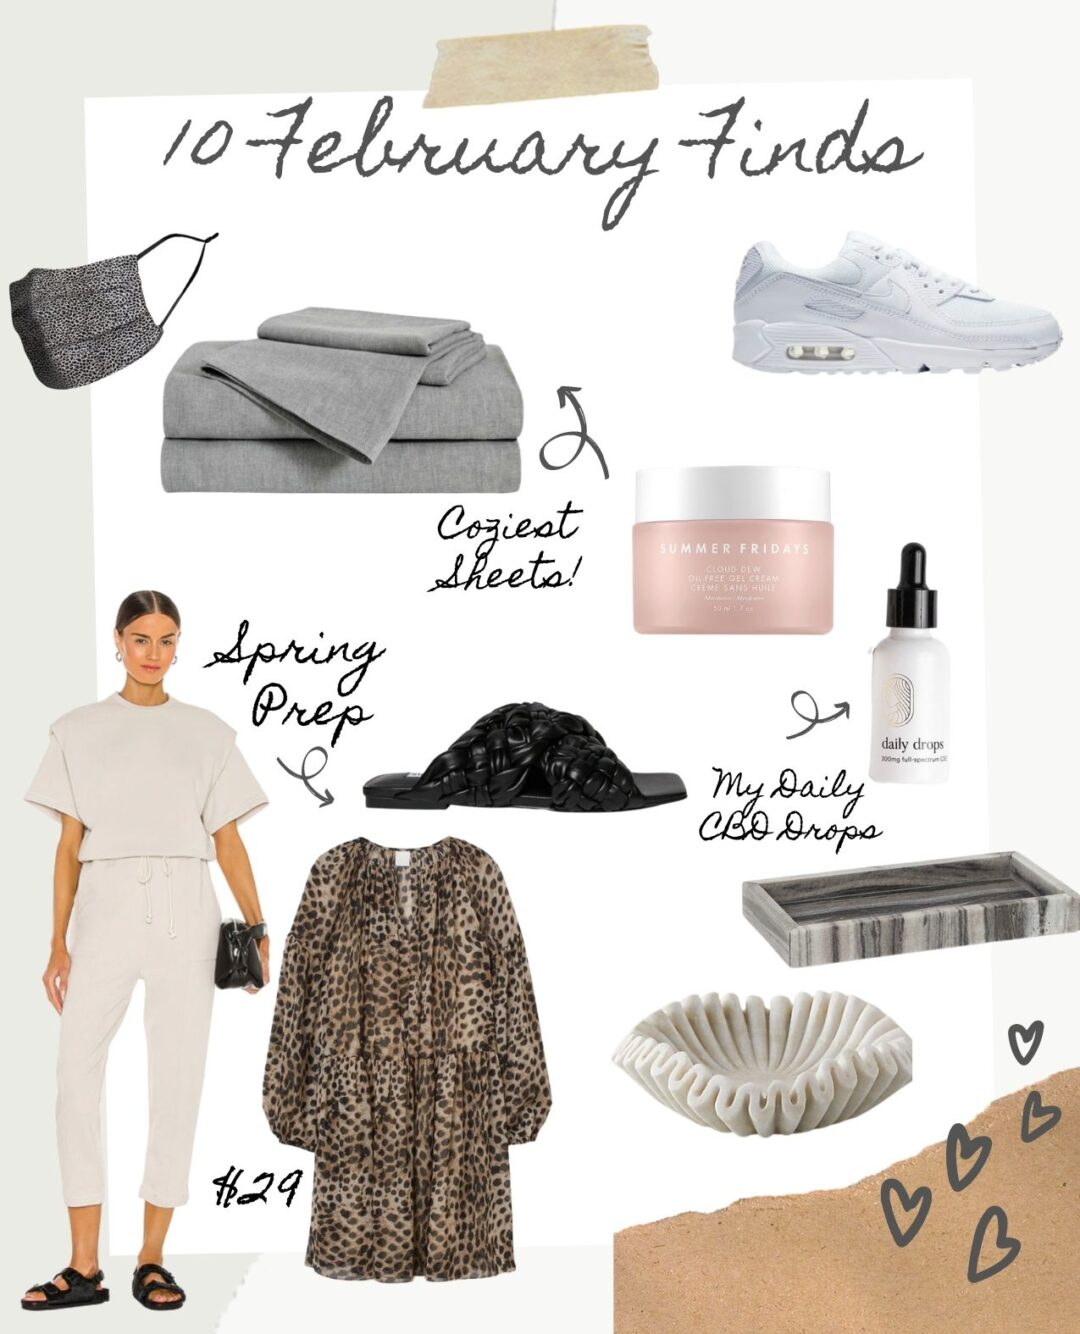 10 february finds